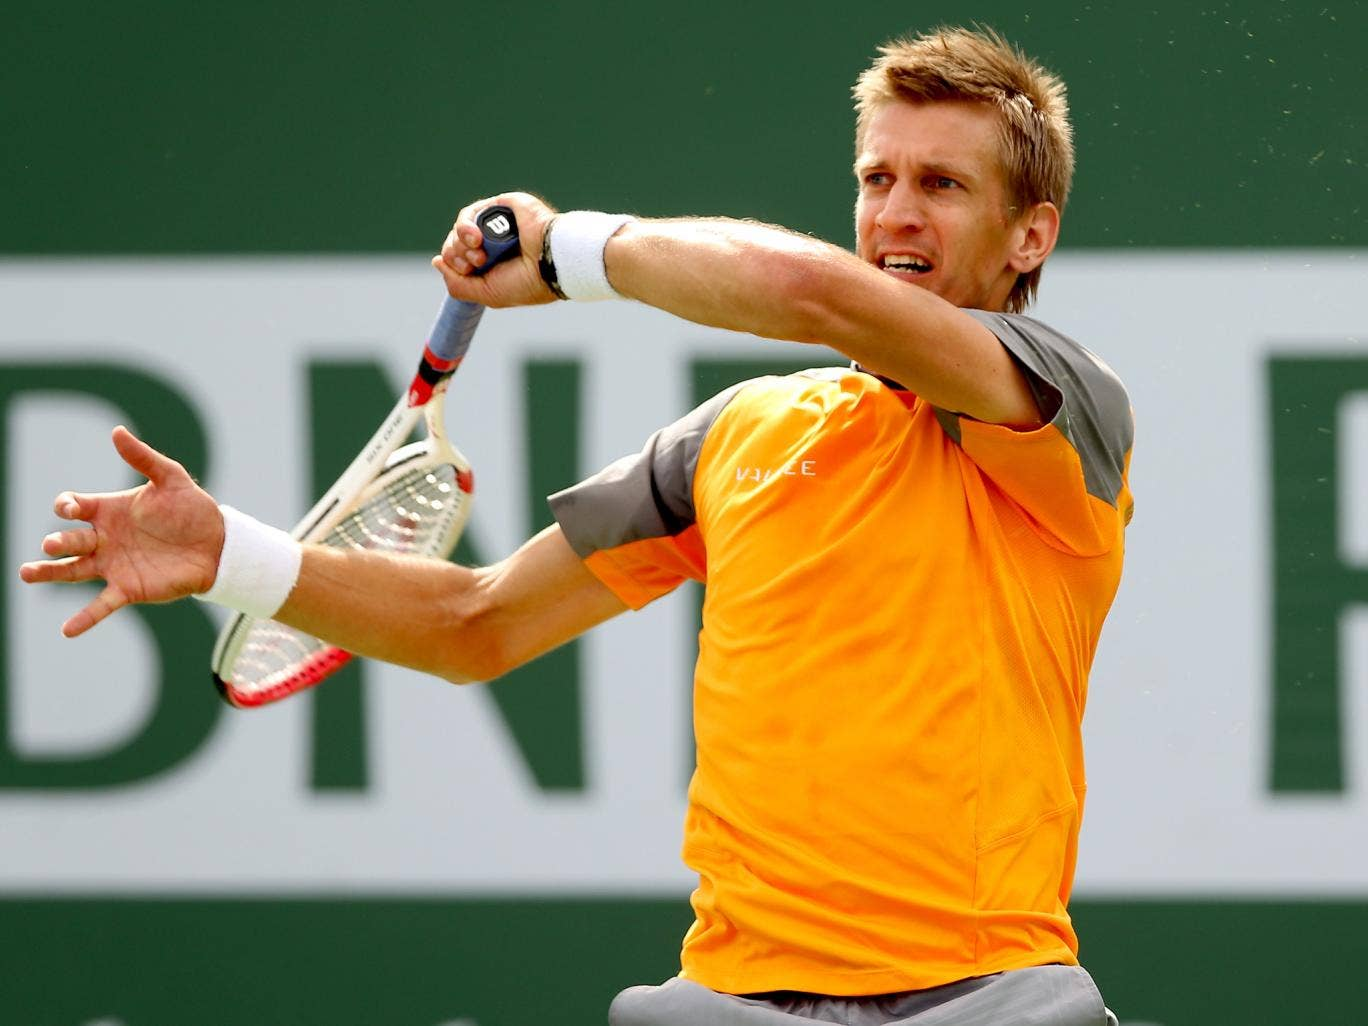 Jarkko Nieminen defeated Bernard Tomic in just 28 minutes and 20 seconds to record the fastest ever win on the ATP Tour